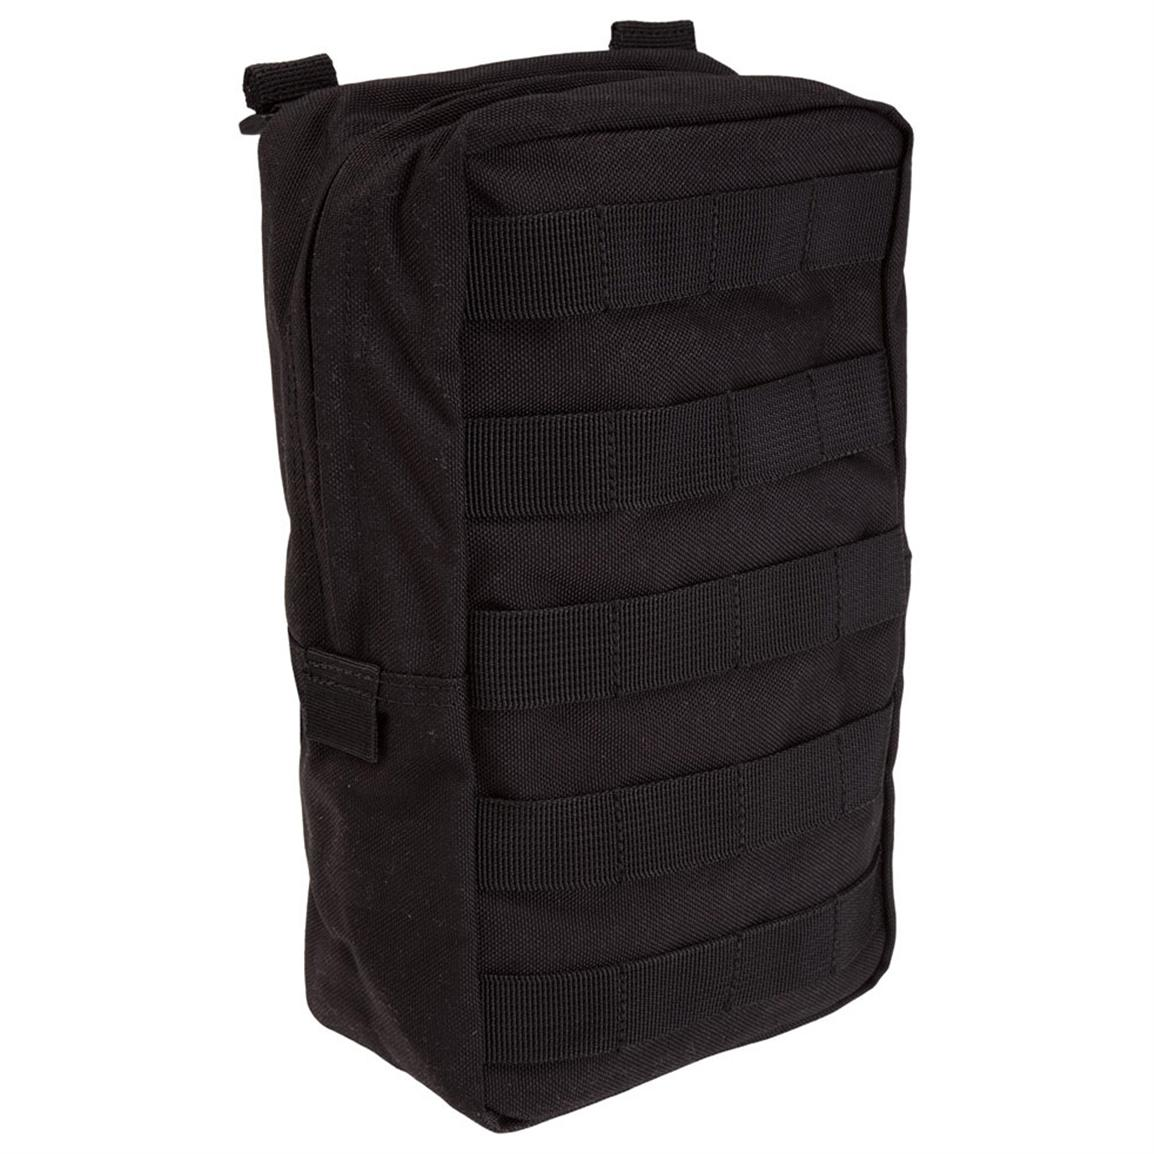 5.11 Tactical® 6.10 Vertical Pouch, Black